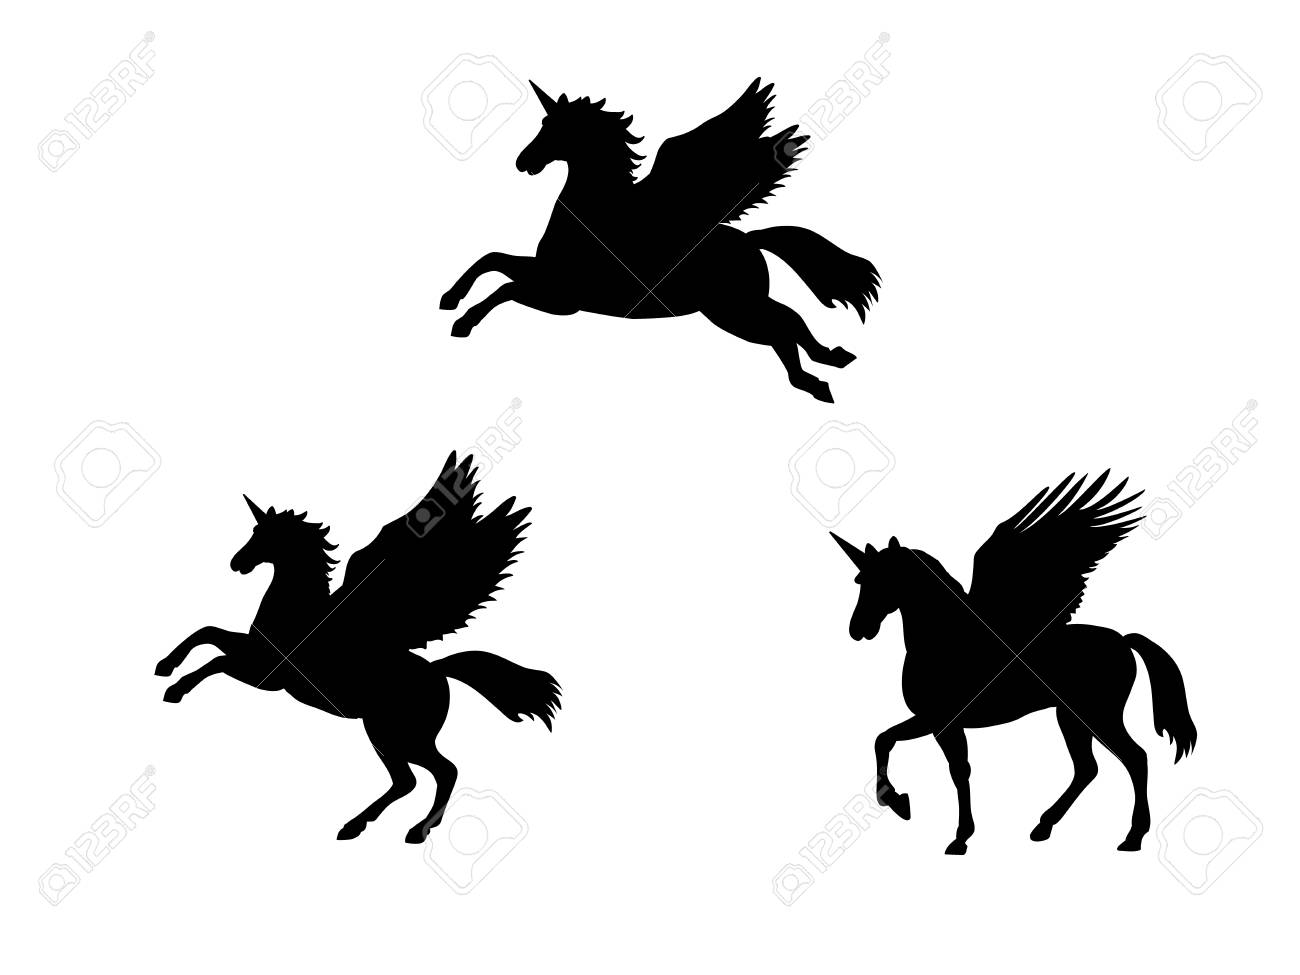 Pegasus Unicorn silhouette mythology symbol fantasy tale